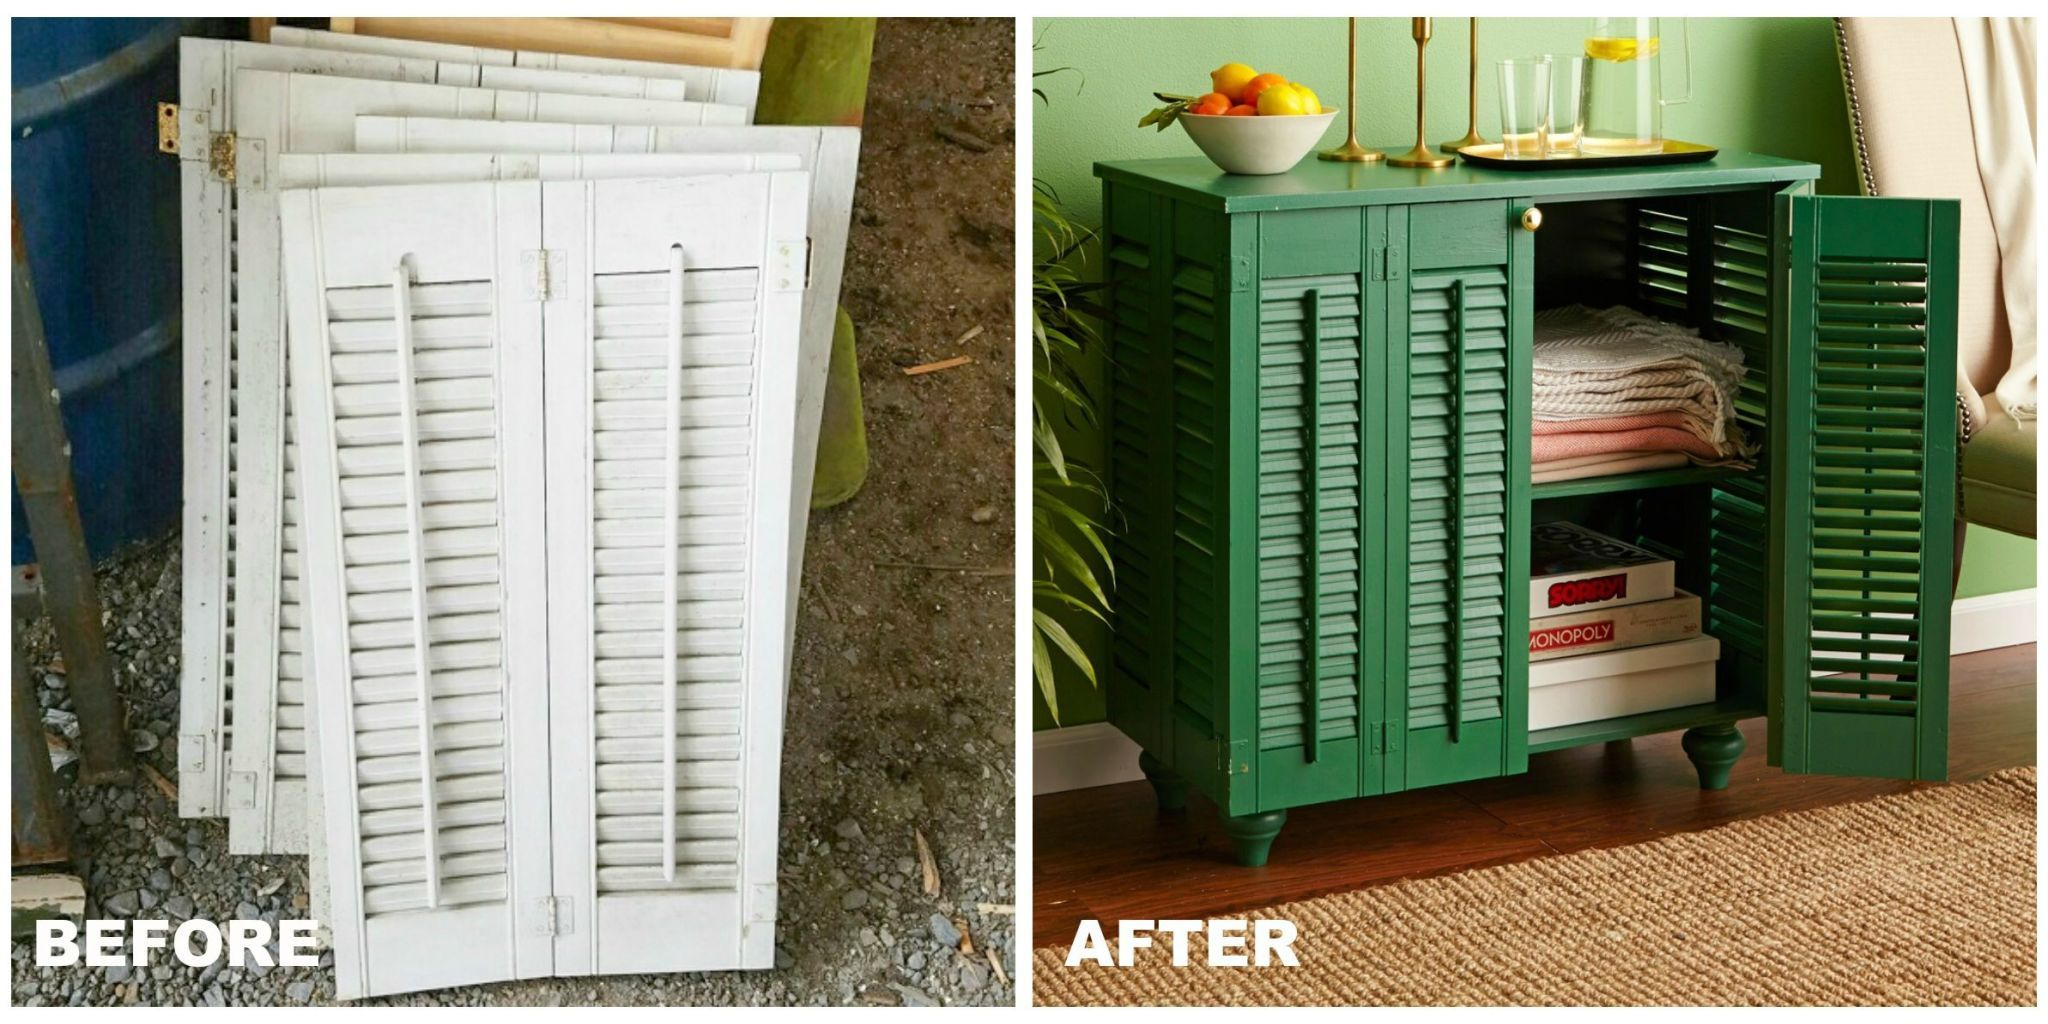 Before you shell out for something new consider upcycling a thrifted find into a neat storage solution. & 10 Genius Trash-to-Treasure DIY Organization Ideas - DIY Storage Ideas